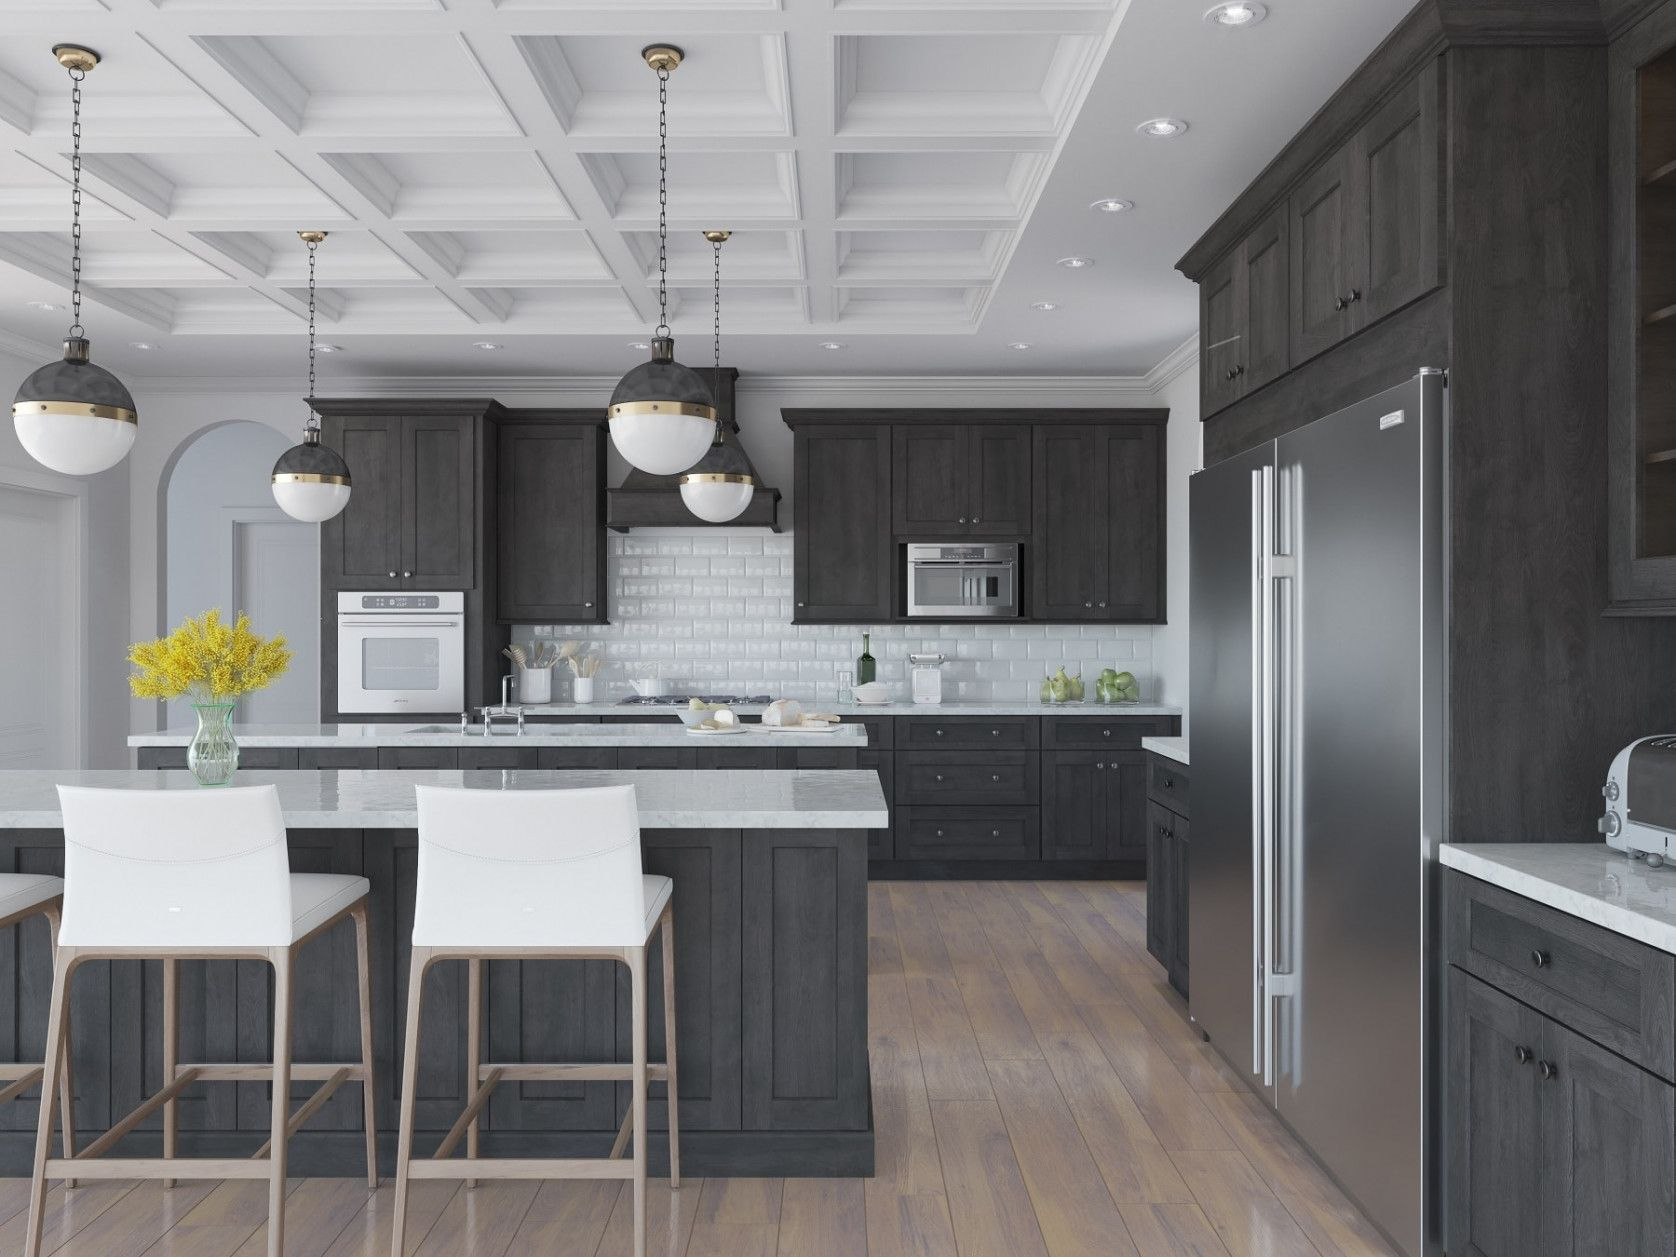 Best Place To Buy Kitchen Cabinets Spoon Pin By Rahayu12 On Interior Analogi Pinterest